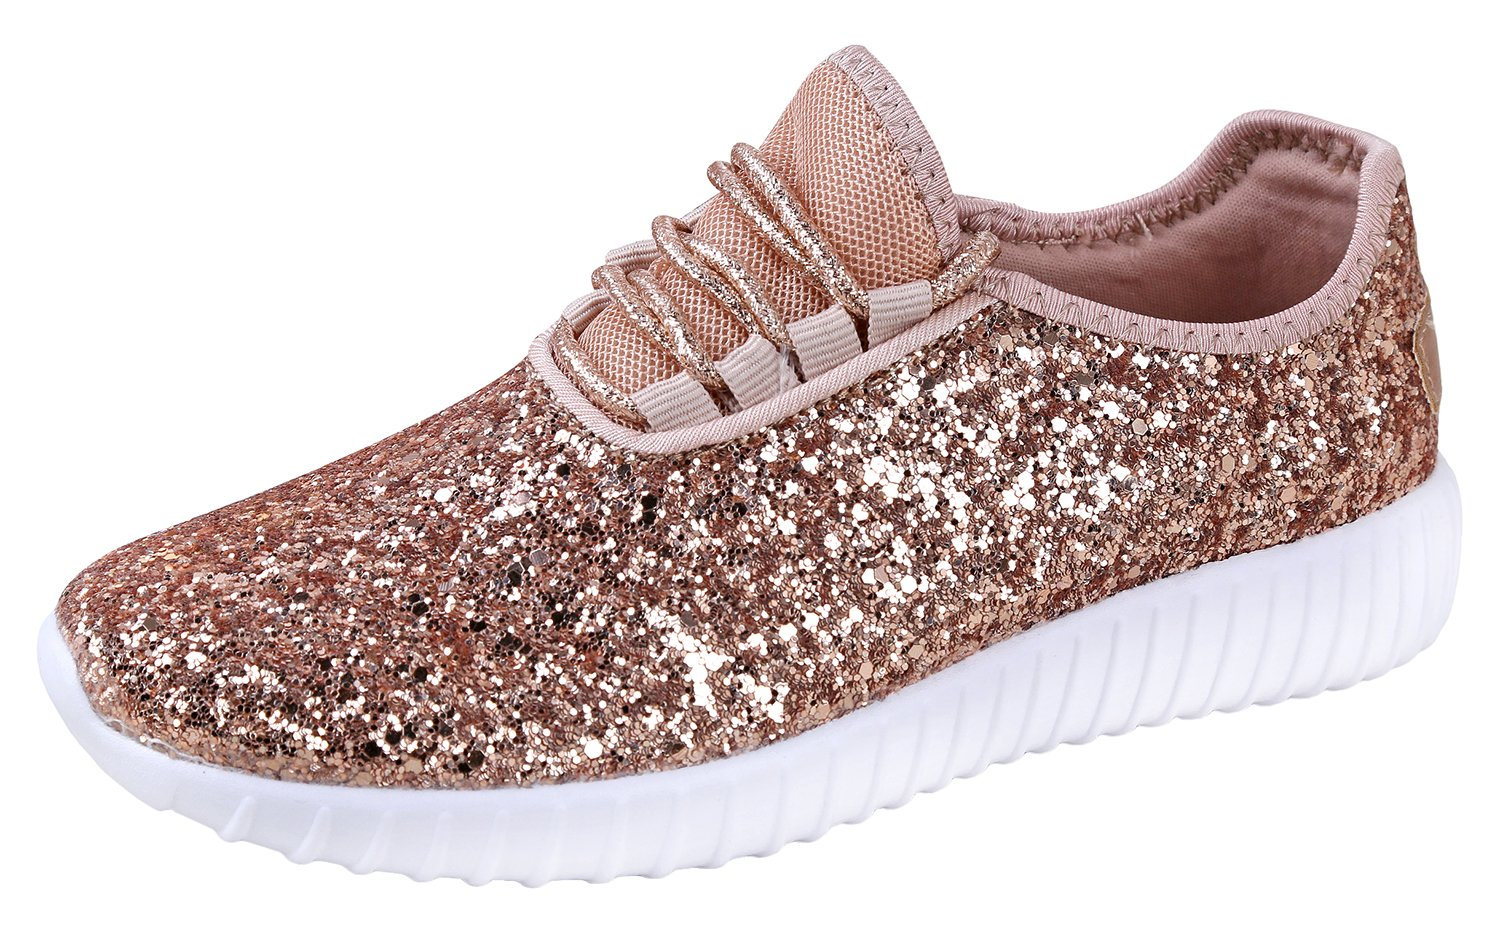 JKNY Kids Girls Fashion Metallic Sequins Glitter Lace up Sneakers Rose Gold 9